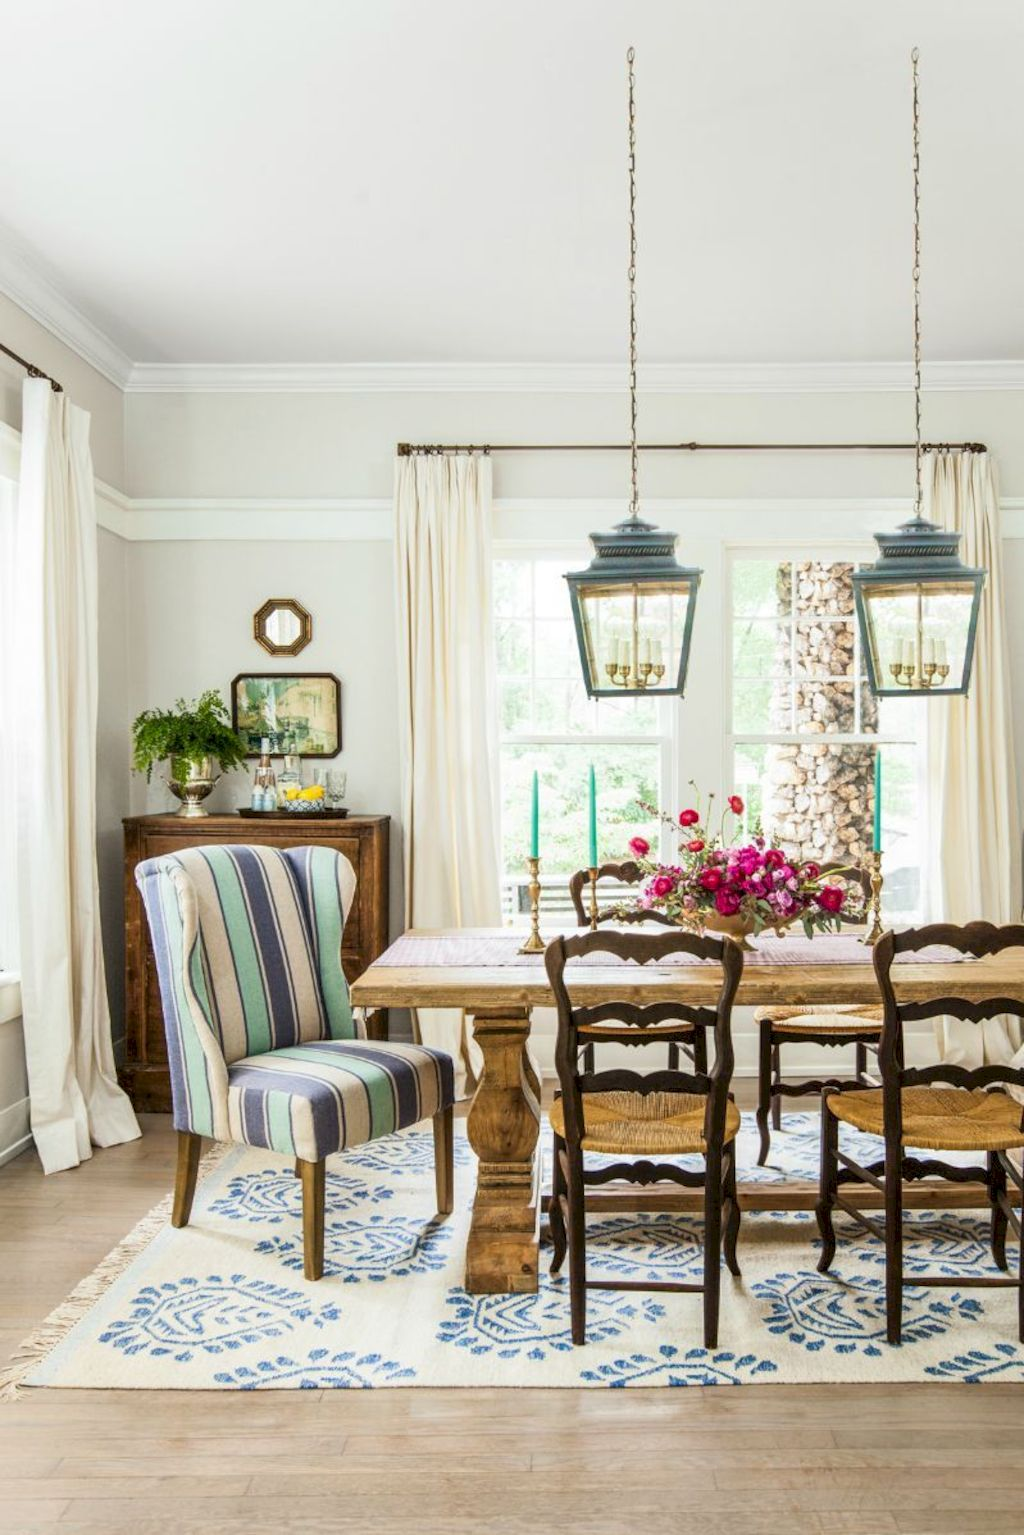 Beach home dining room style giving a fresh vibe among inviting recreational interior update Image 11